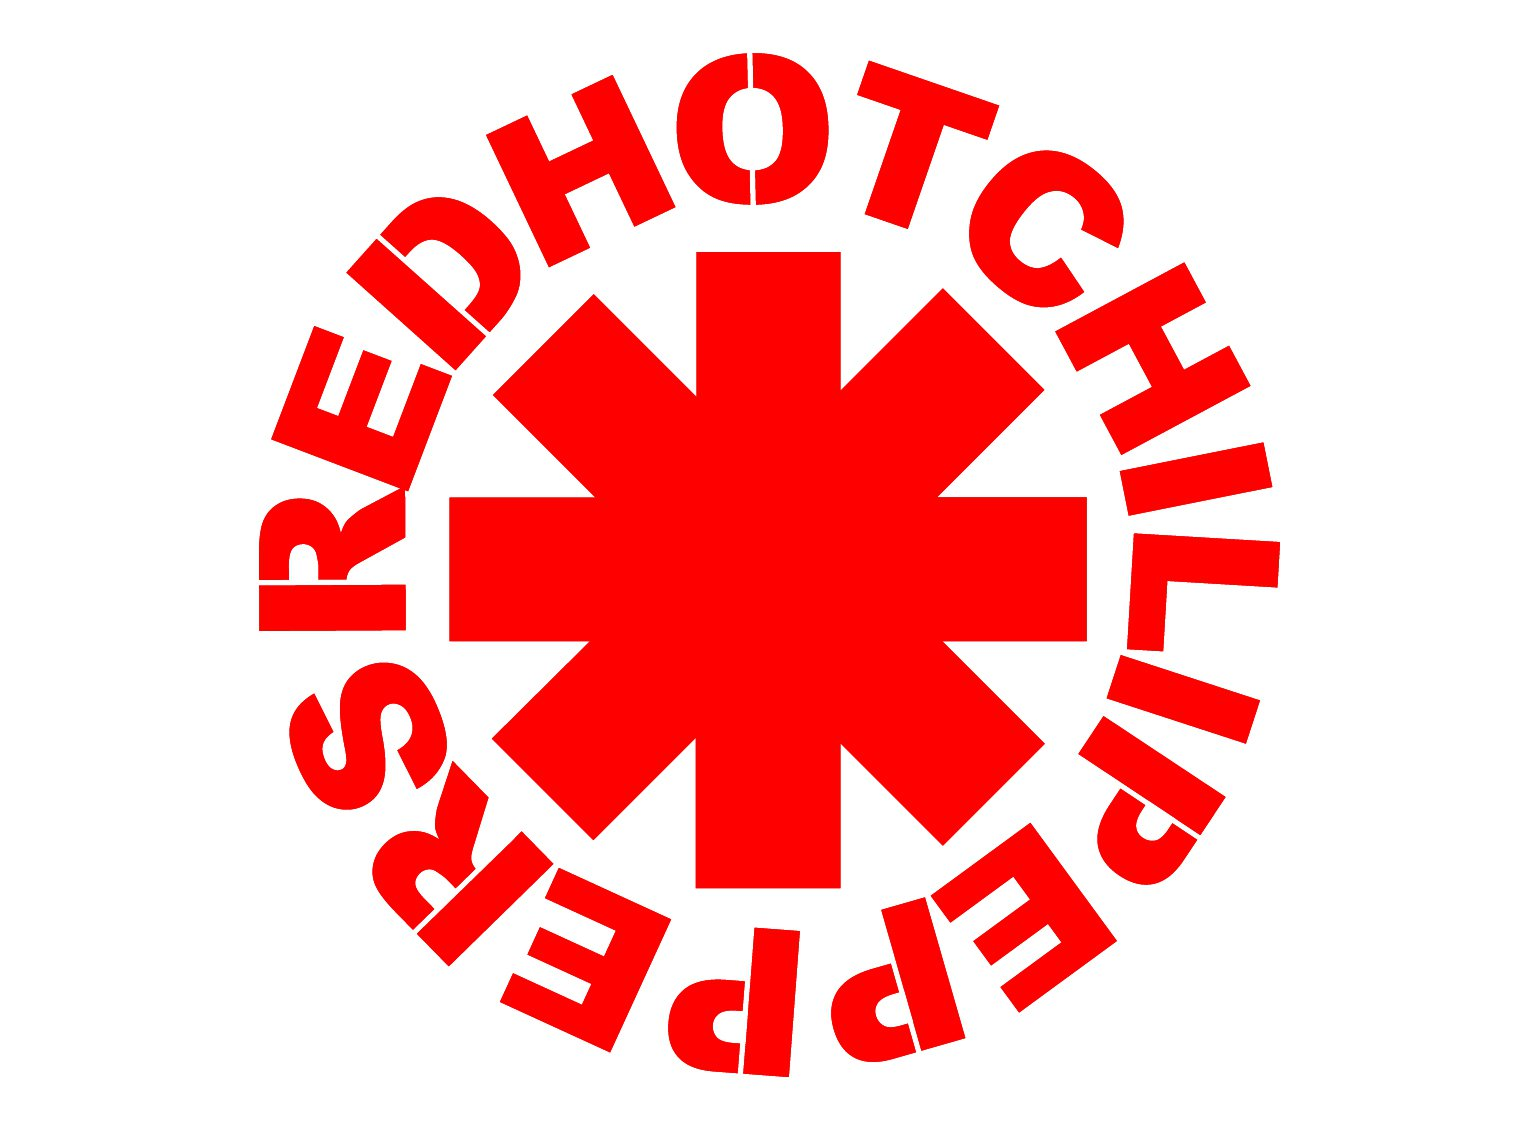 Red Hot Chili Peppers Logo Red Hot Chili Peppers Symbol Meaning